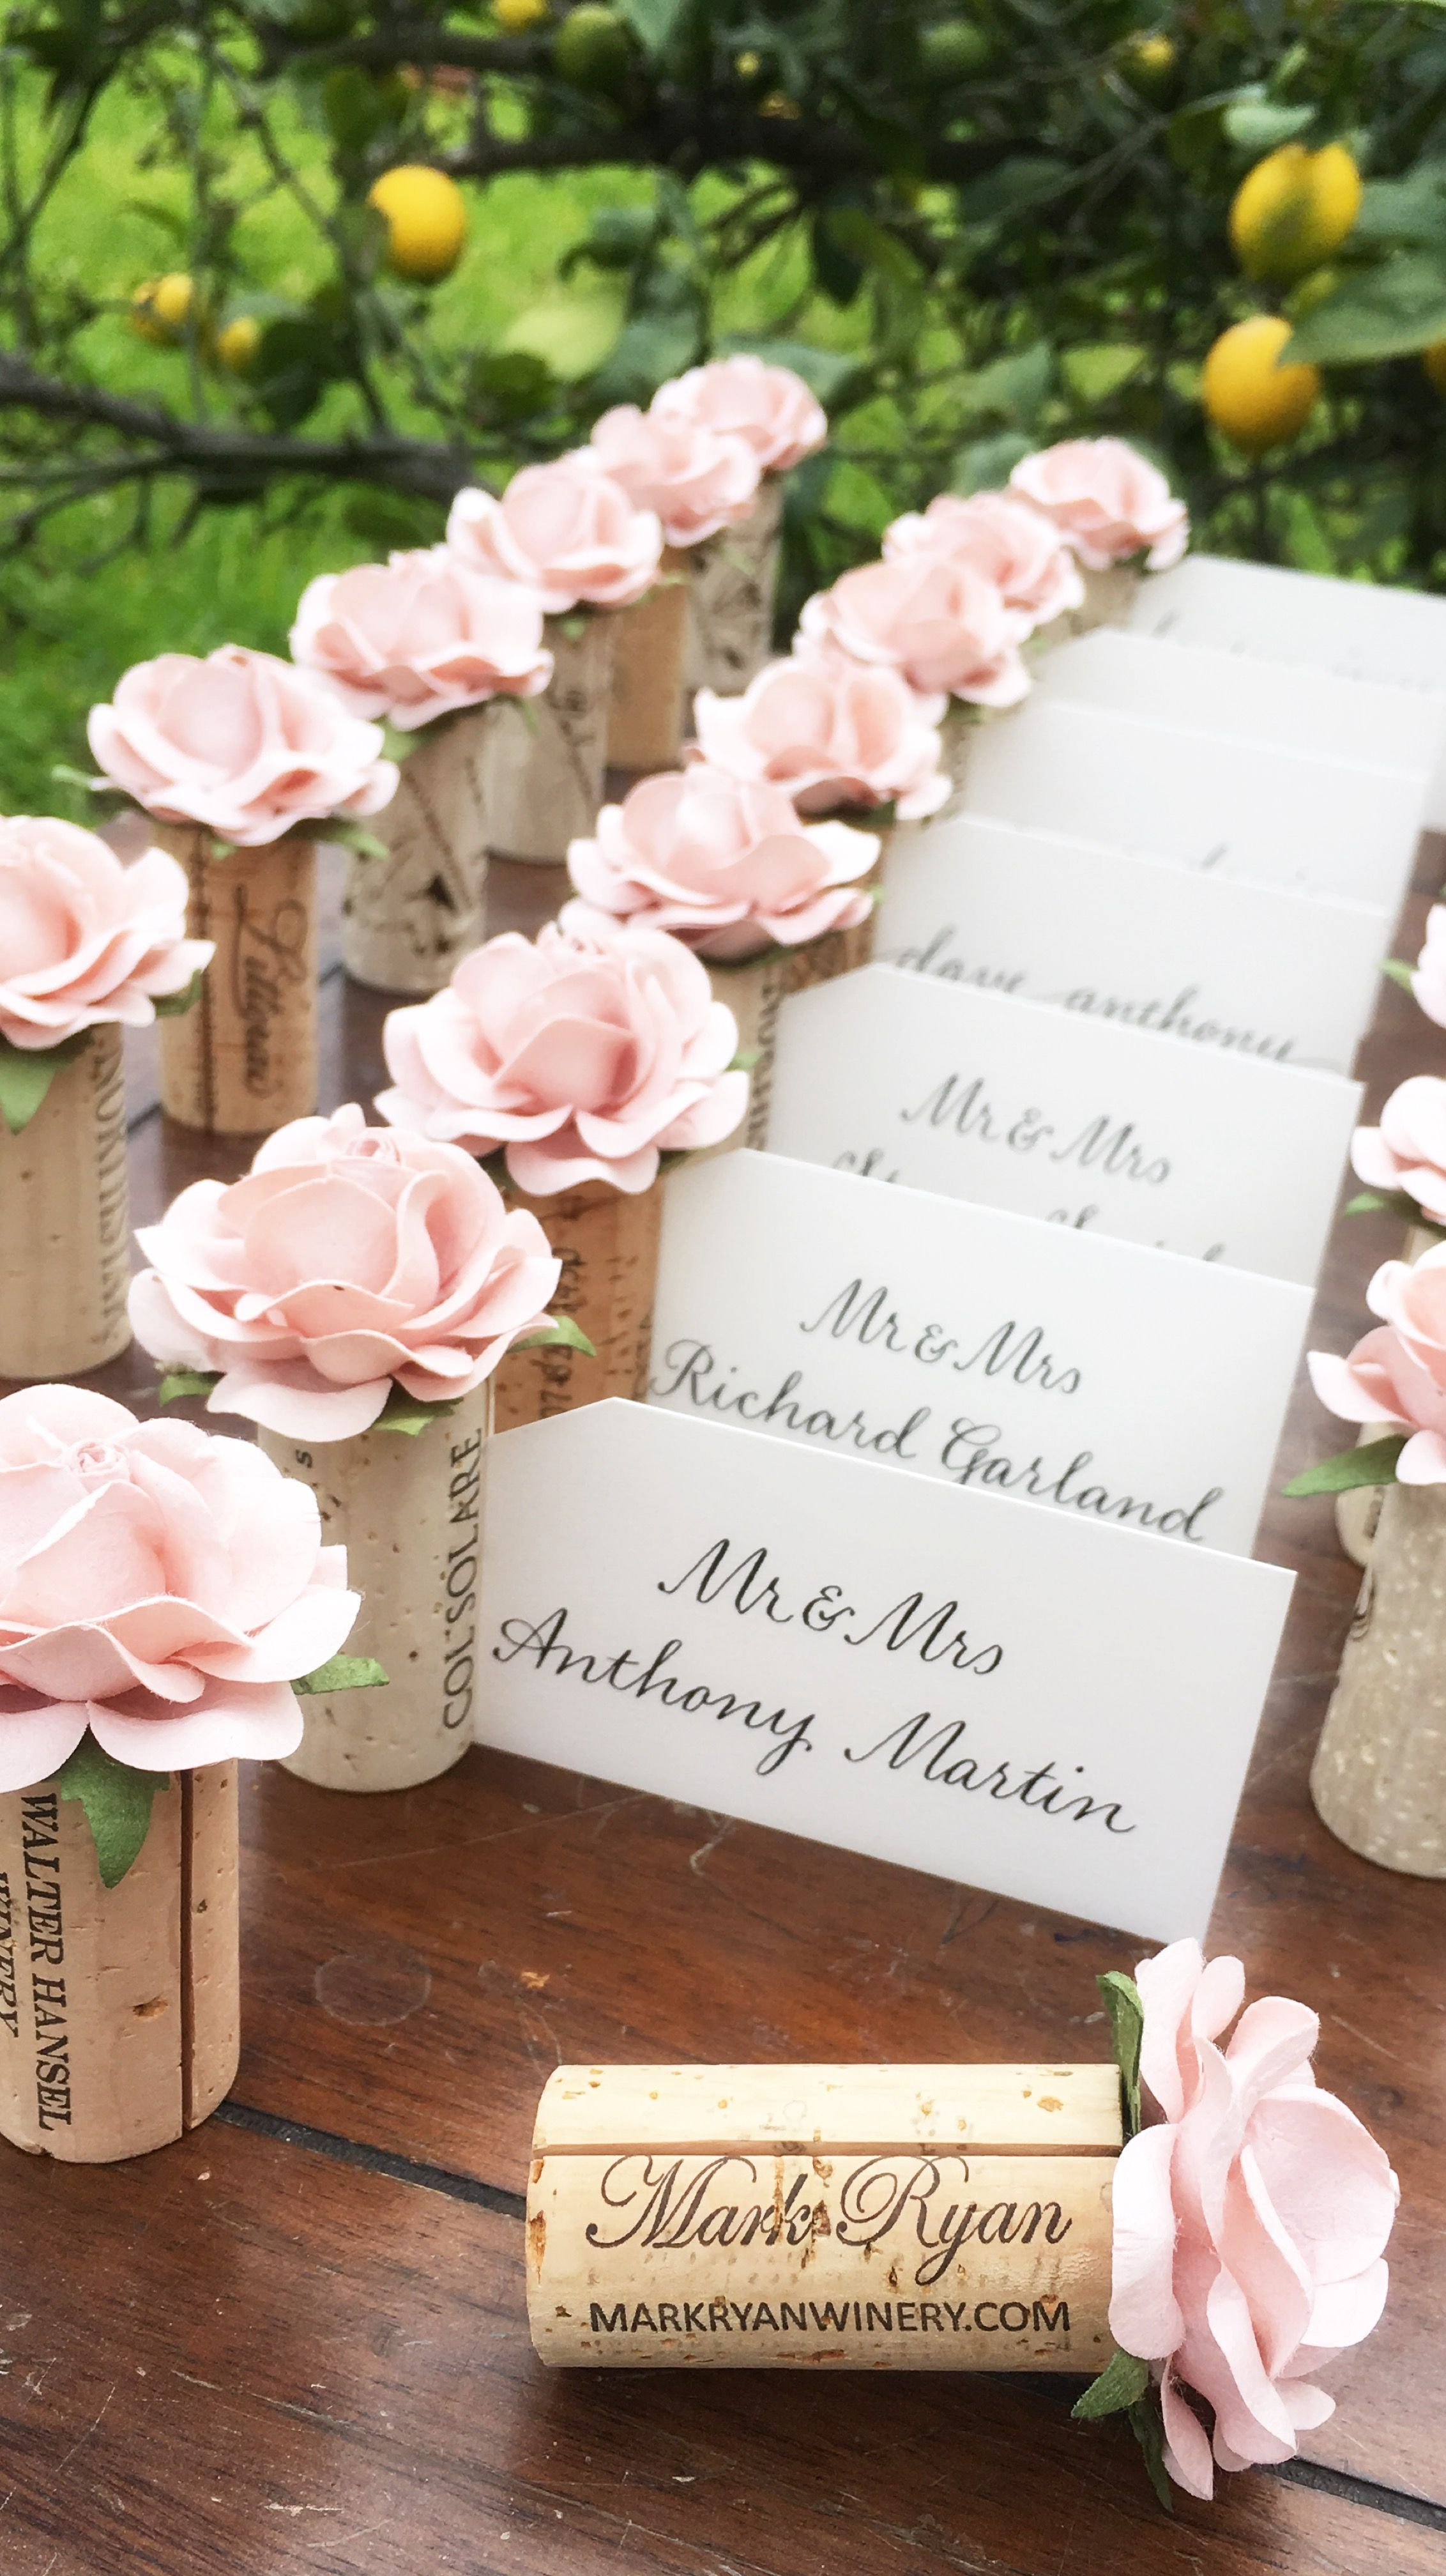 Wine Cork Place Card Holder. Winery Wedding Decor. Seating Cards. Name Card Holder. Wine Tasting Party. Bridal Shower. Winery Bachelorette.